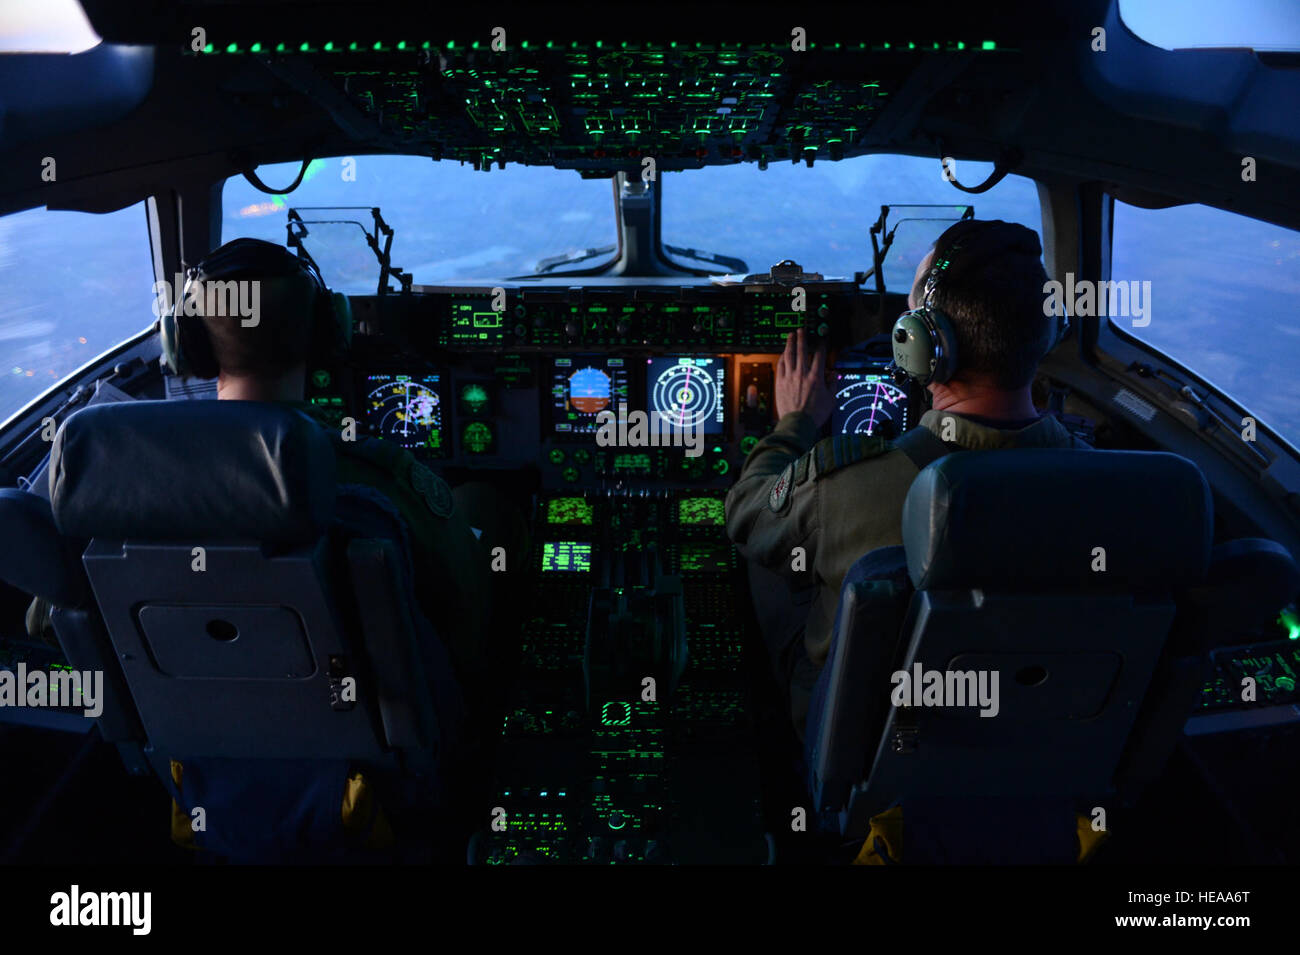 Grant Cooke, Both Pilots Assigned To The 429th (transport) Squadron, Pilot  A Cc177 Globemaster Iii Aircraft For An Airdrop Mission During Joint  Operational